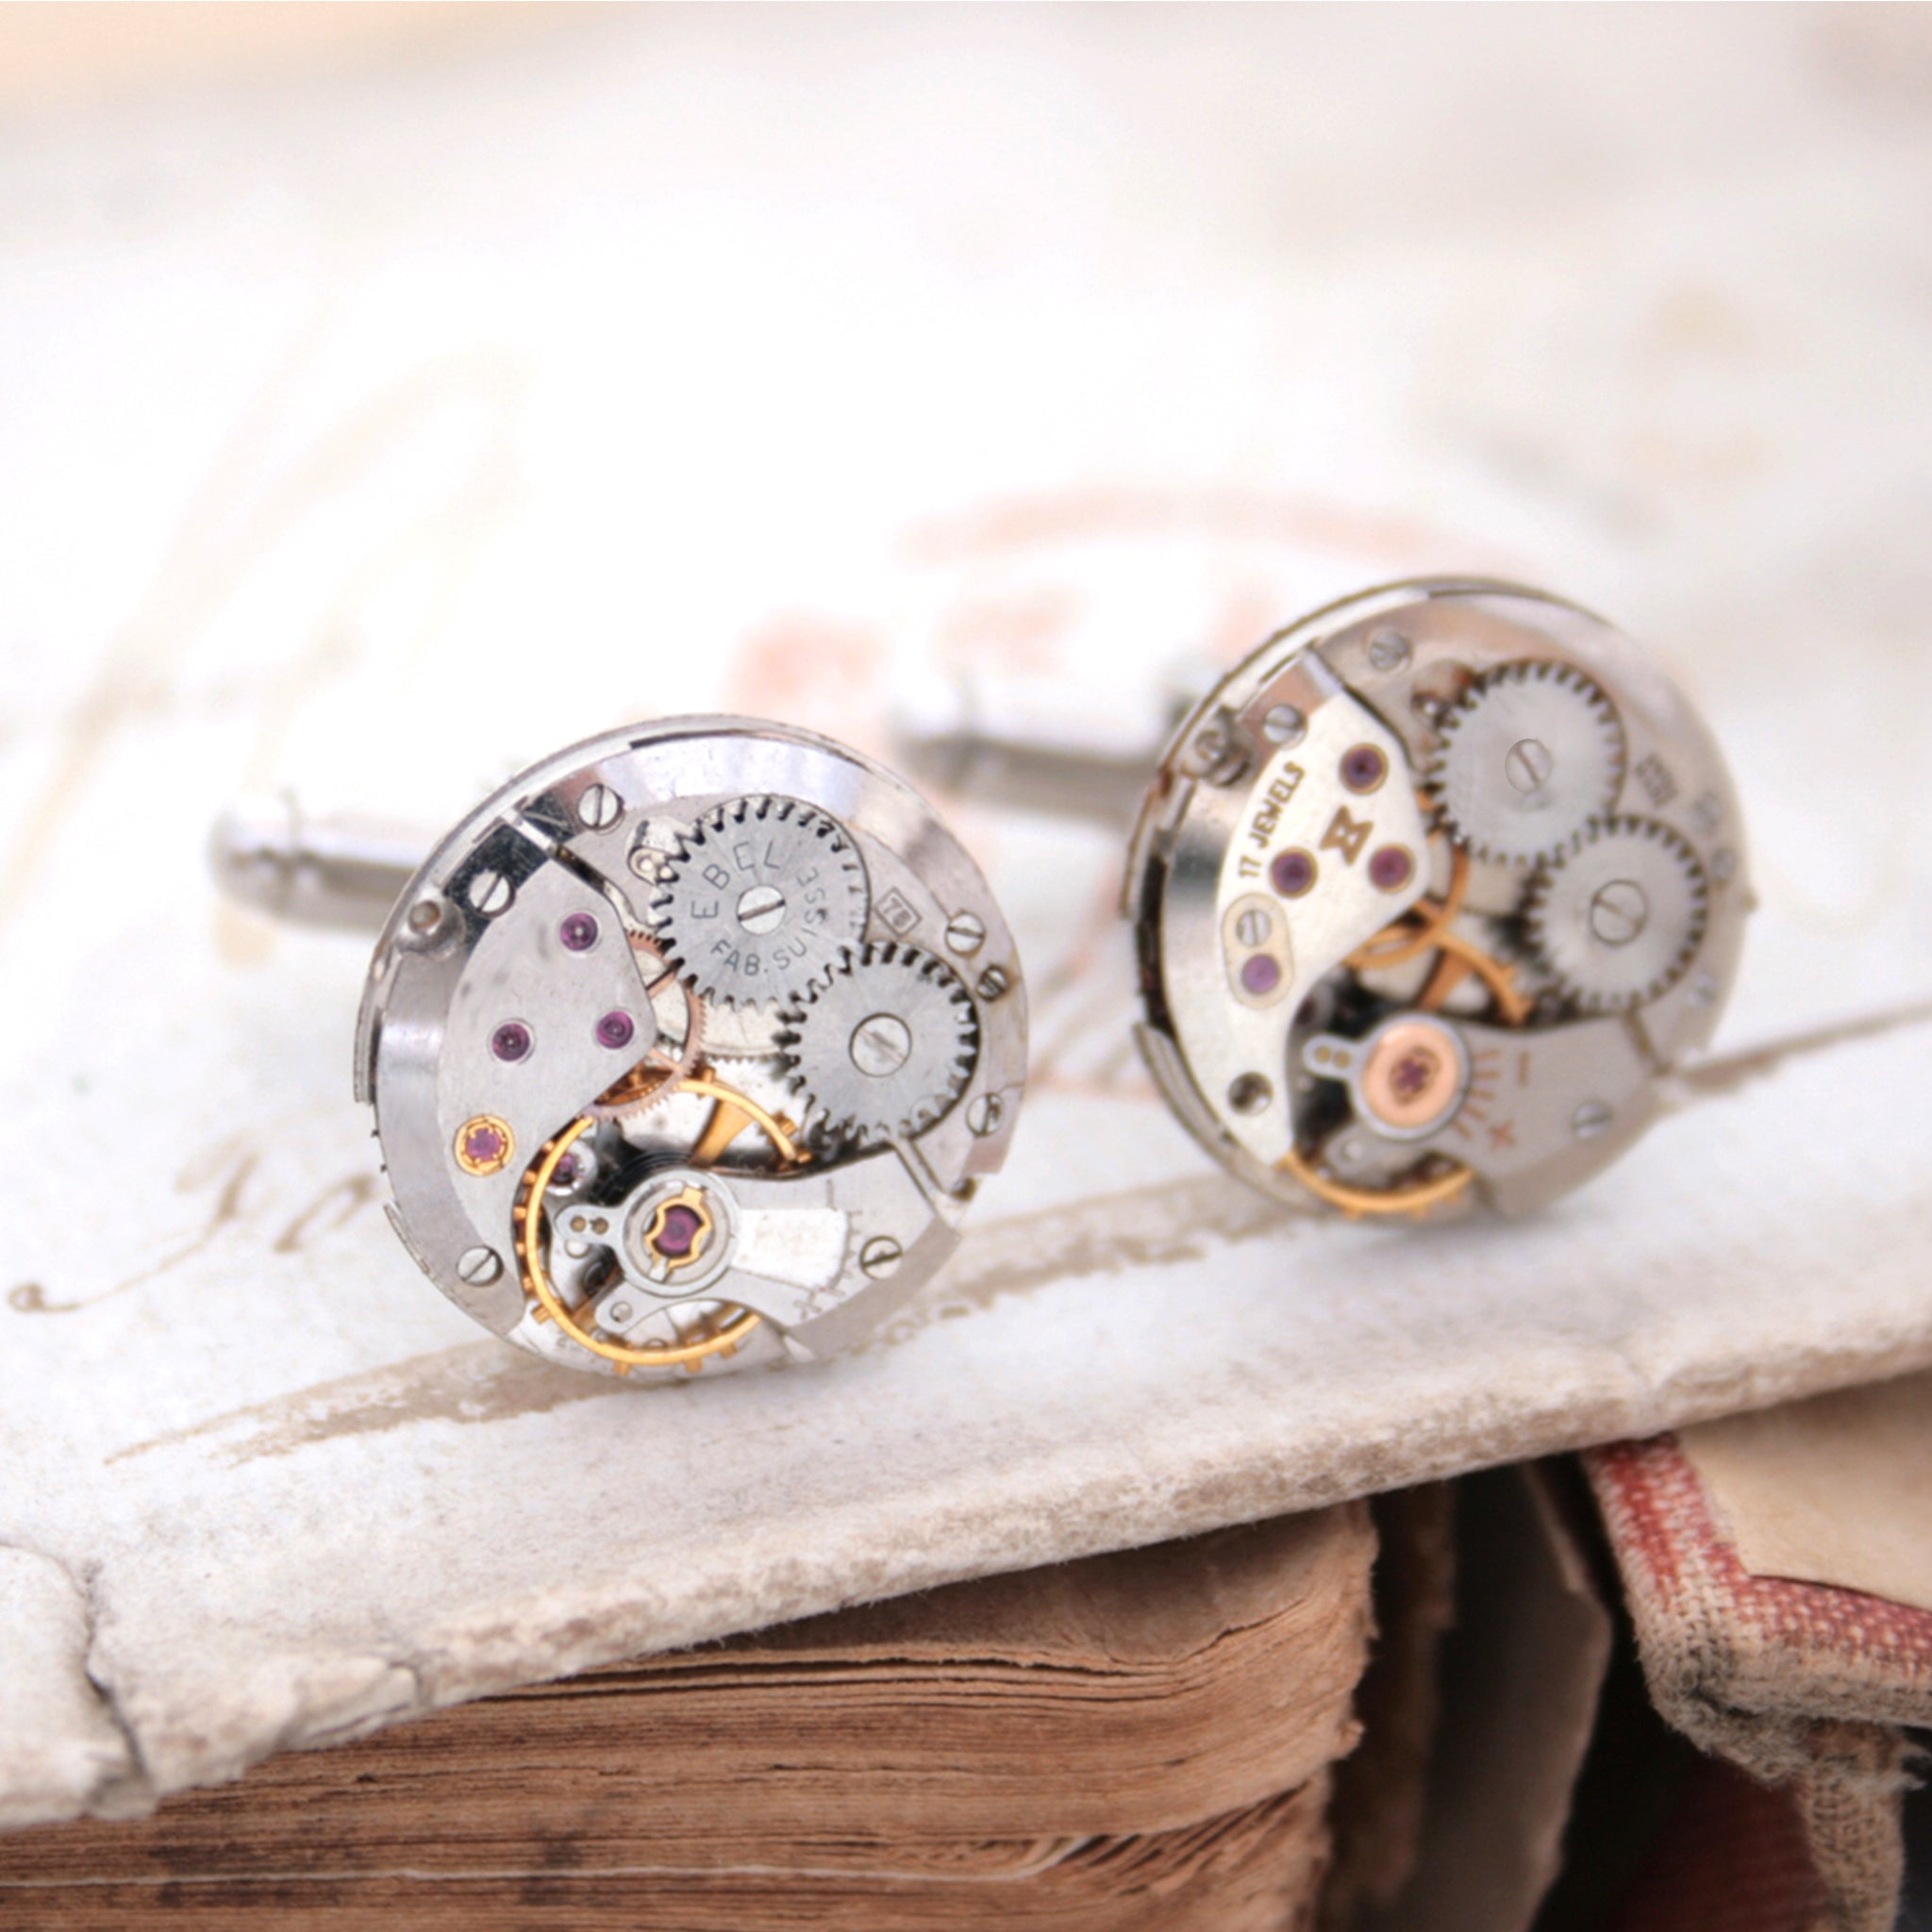 clockwork cufflinks and sets in featuring antique watch movements